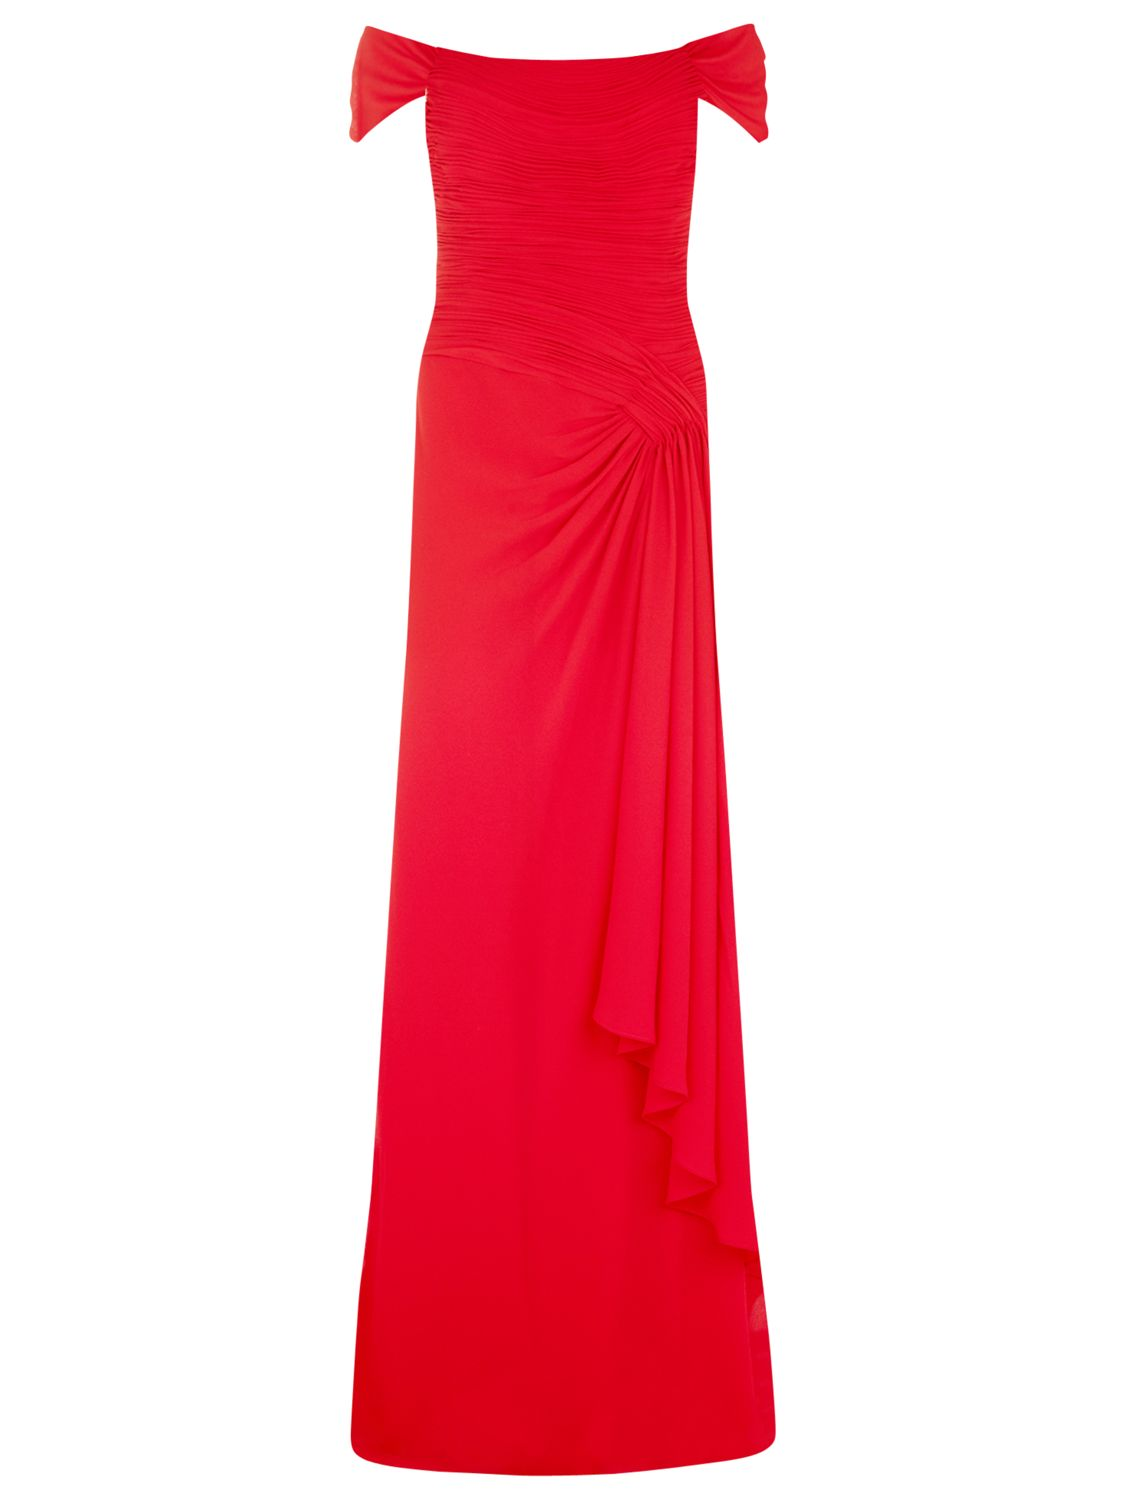 jacques vert lorcan mullany waterfall gown, jacques, vert, lorcan, mullany, waterfall, gown, jacques vert, red|black|black, 16|10|18, clearance, womenswear offers, womens dresses offers, new years party offers, special offers, women, plus size, inactive womenswear, new reductions, womens dresses, party outfits, evening gowns, eveningwear offers, 1691055